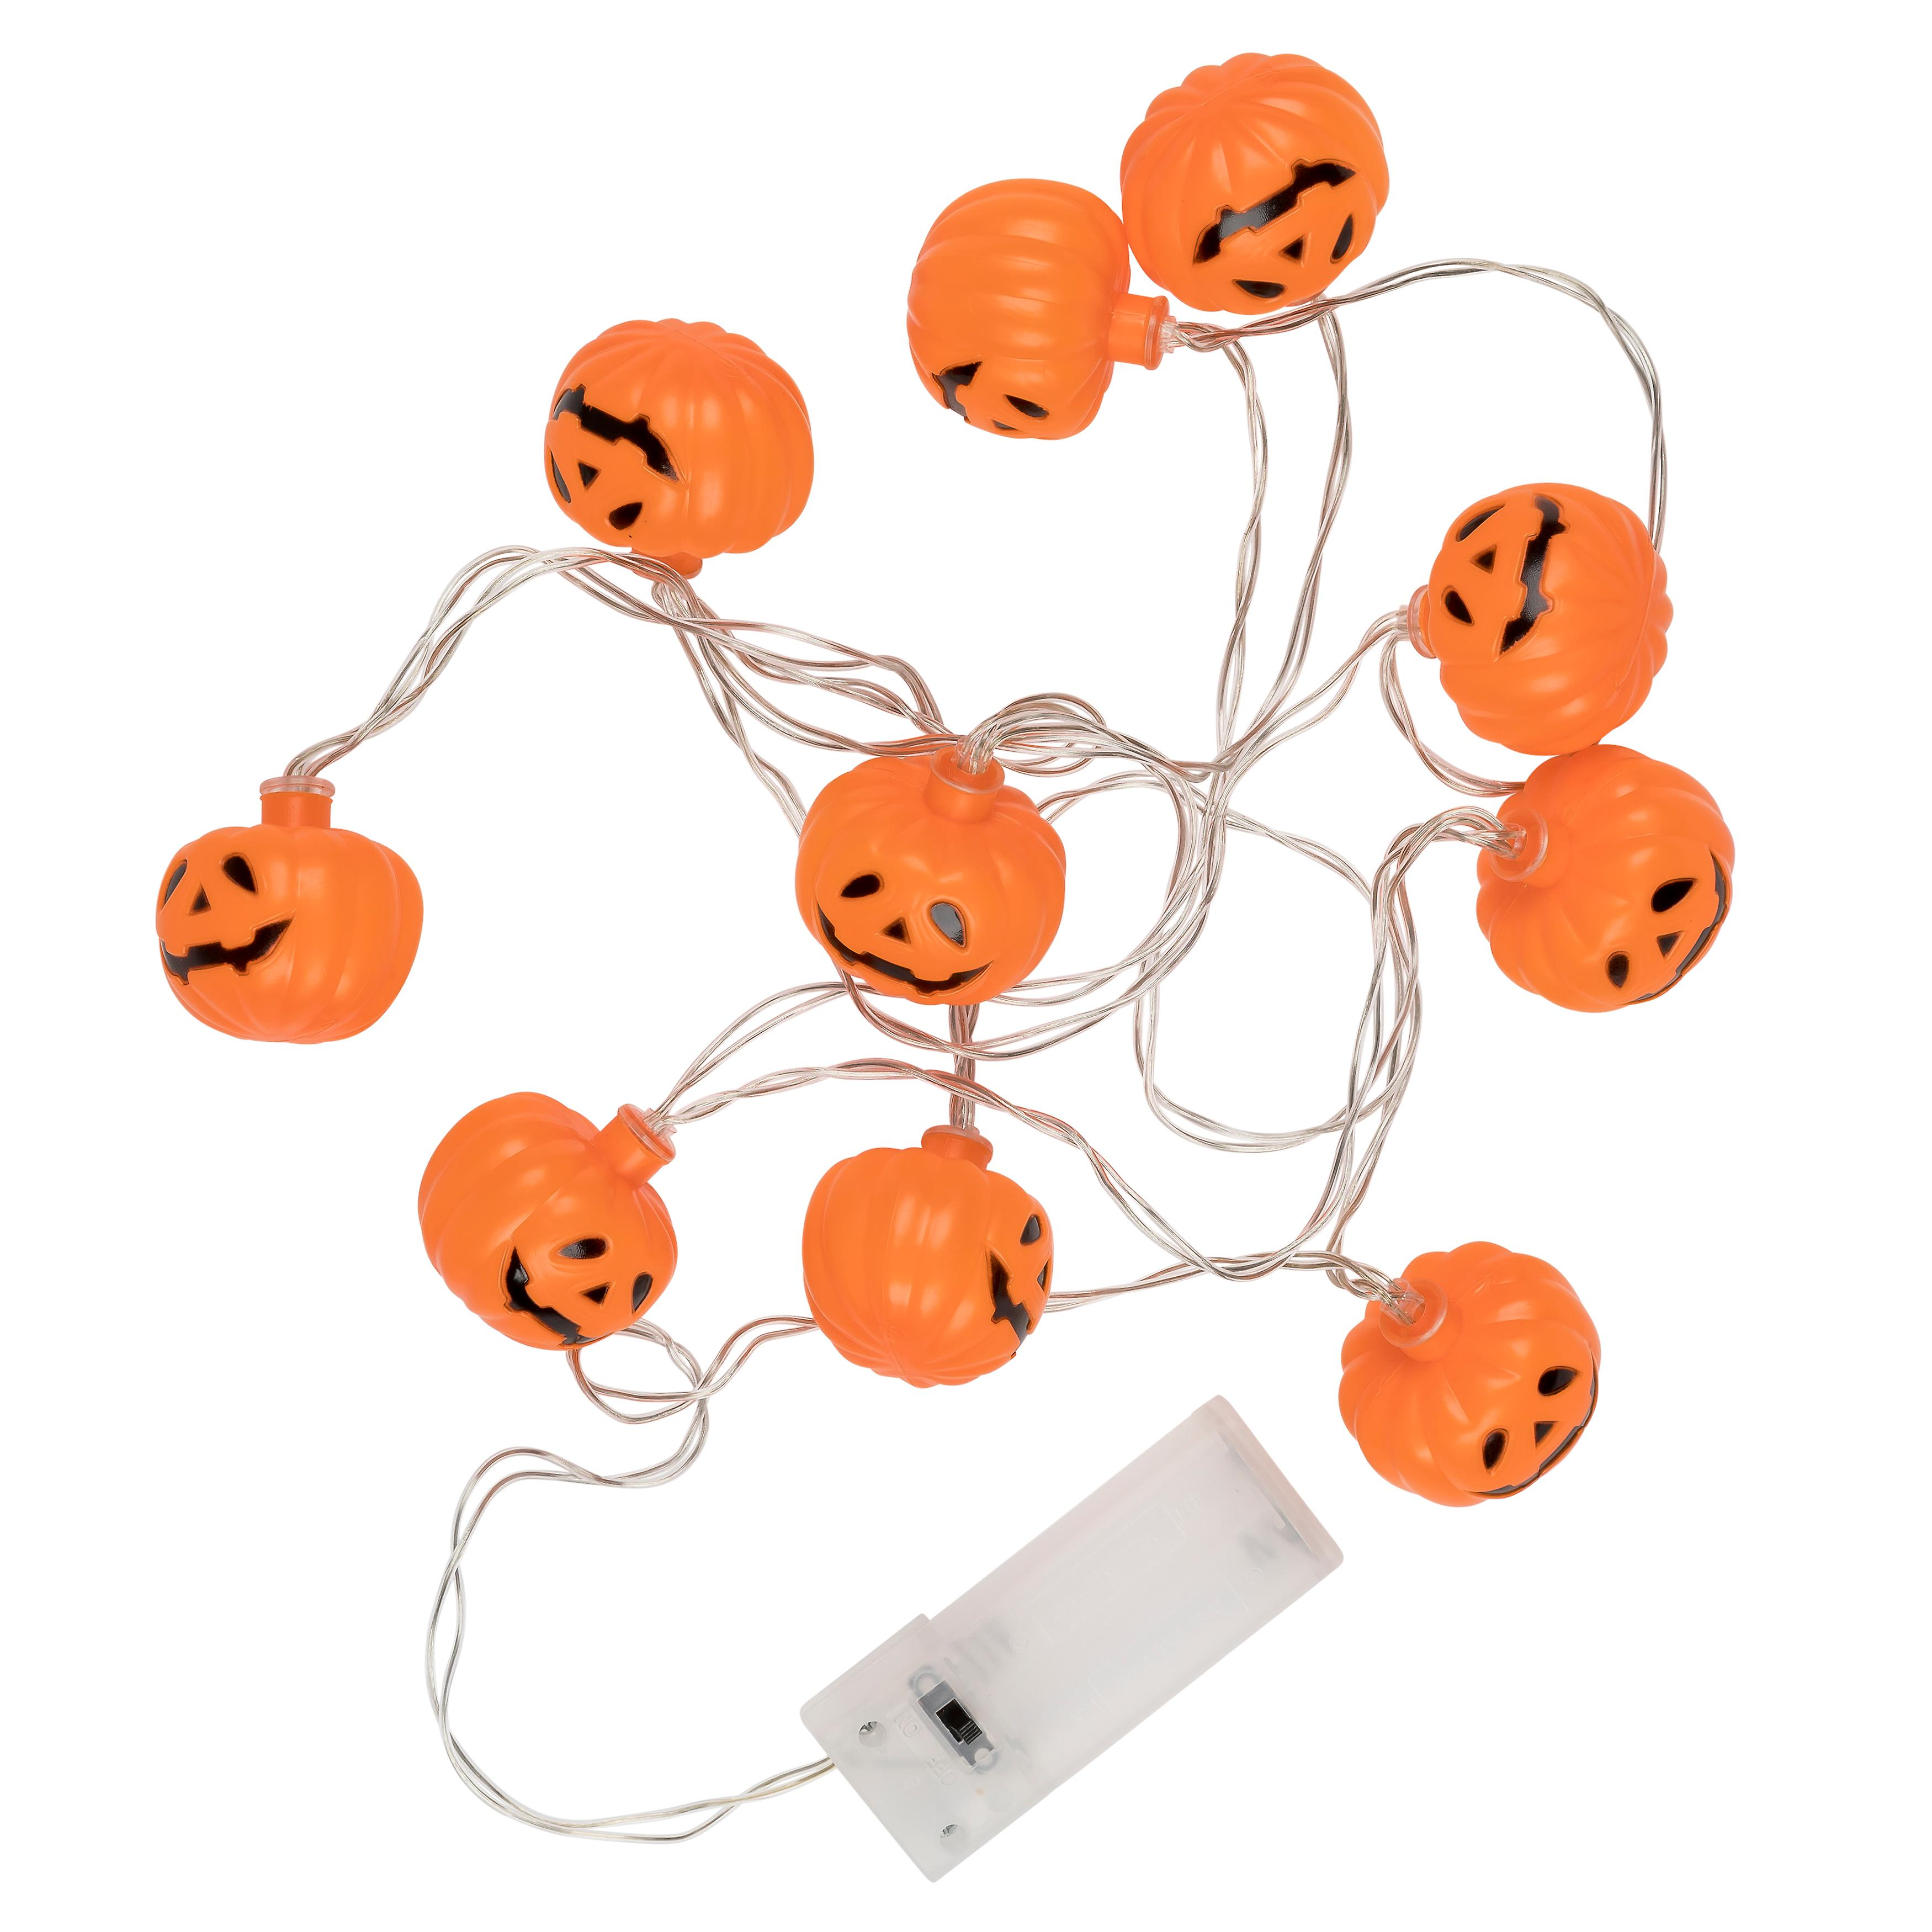 TRIXES 1 x String with 10 Pumpkin LED Lights - Battery operated Halloween Decoration